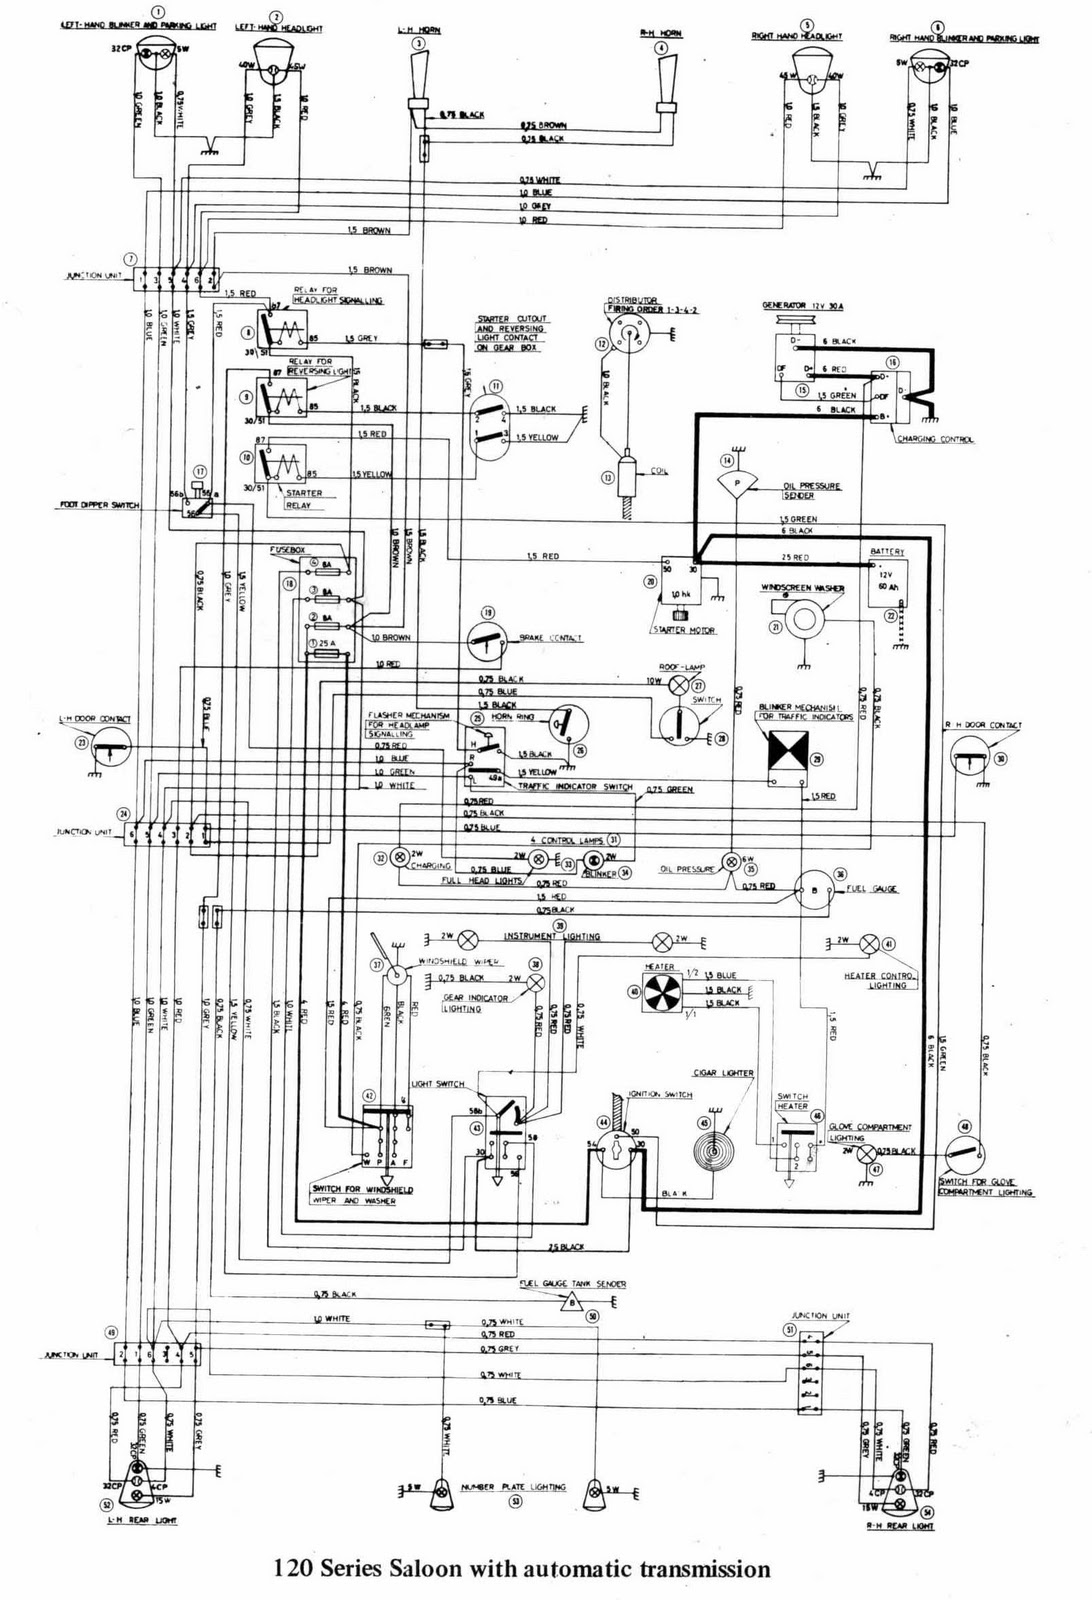 hight resolution of wiring diagram 1998 volvo v70 glt wiring diagram third level rh 17 19 13 jacobwinterstein com 2001 volvo s60 engine diagram volvo s80 wiring diagram